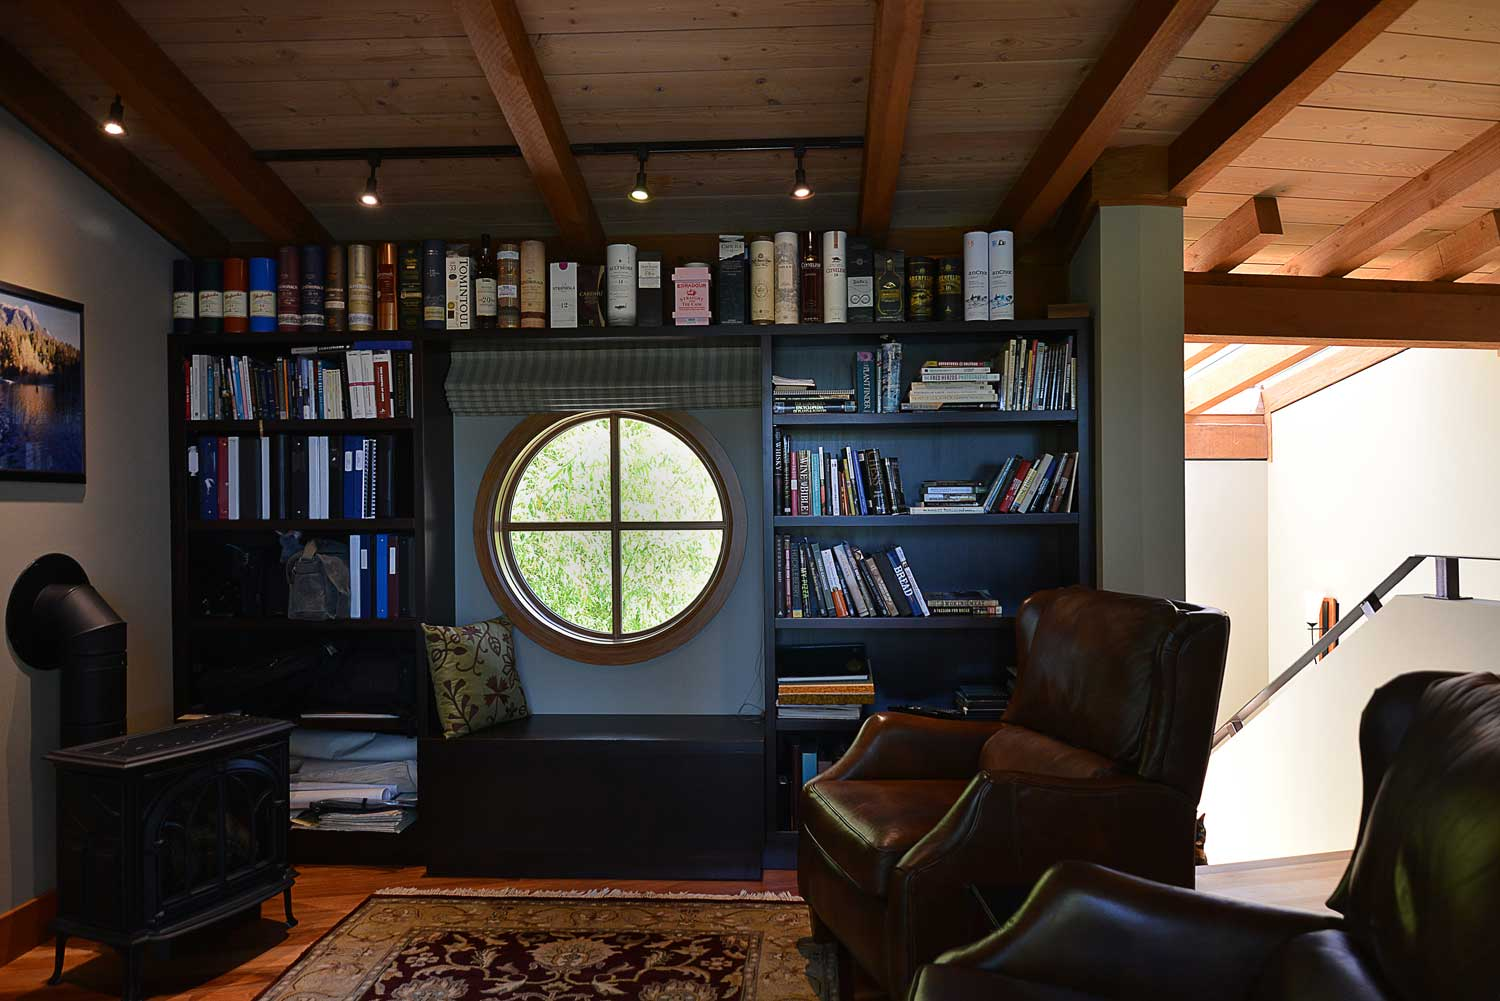 The master upstairs office of this luxury furnished rental house has a window bench seat, leather seats, and a bookcase.